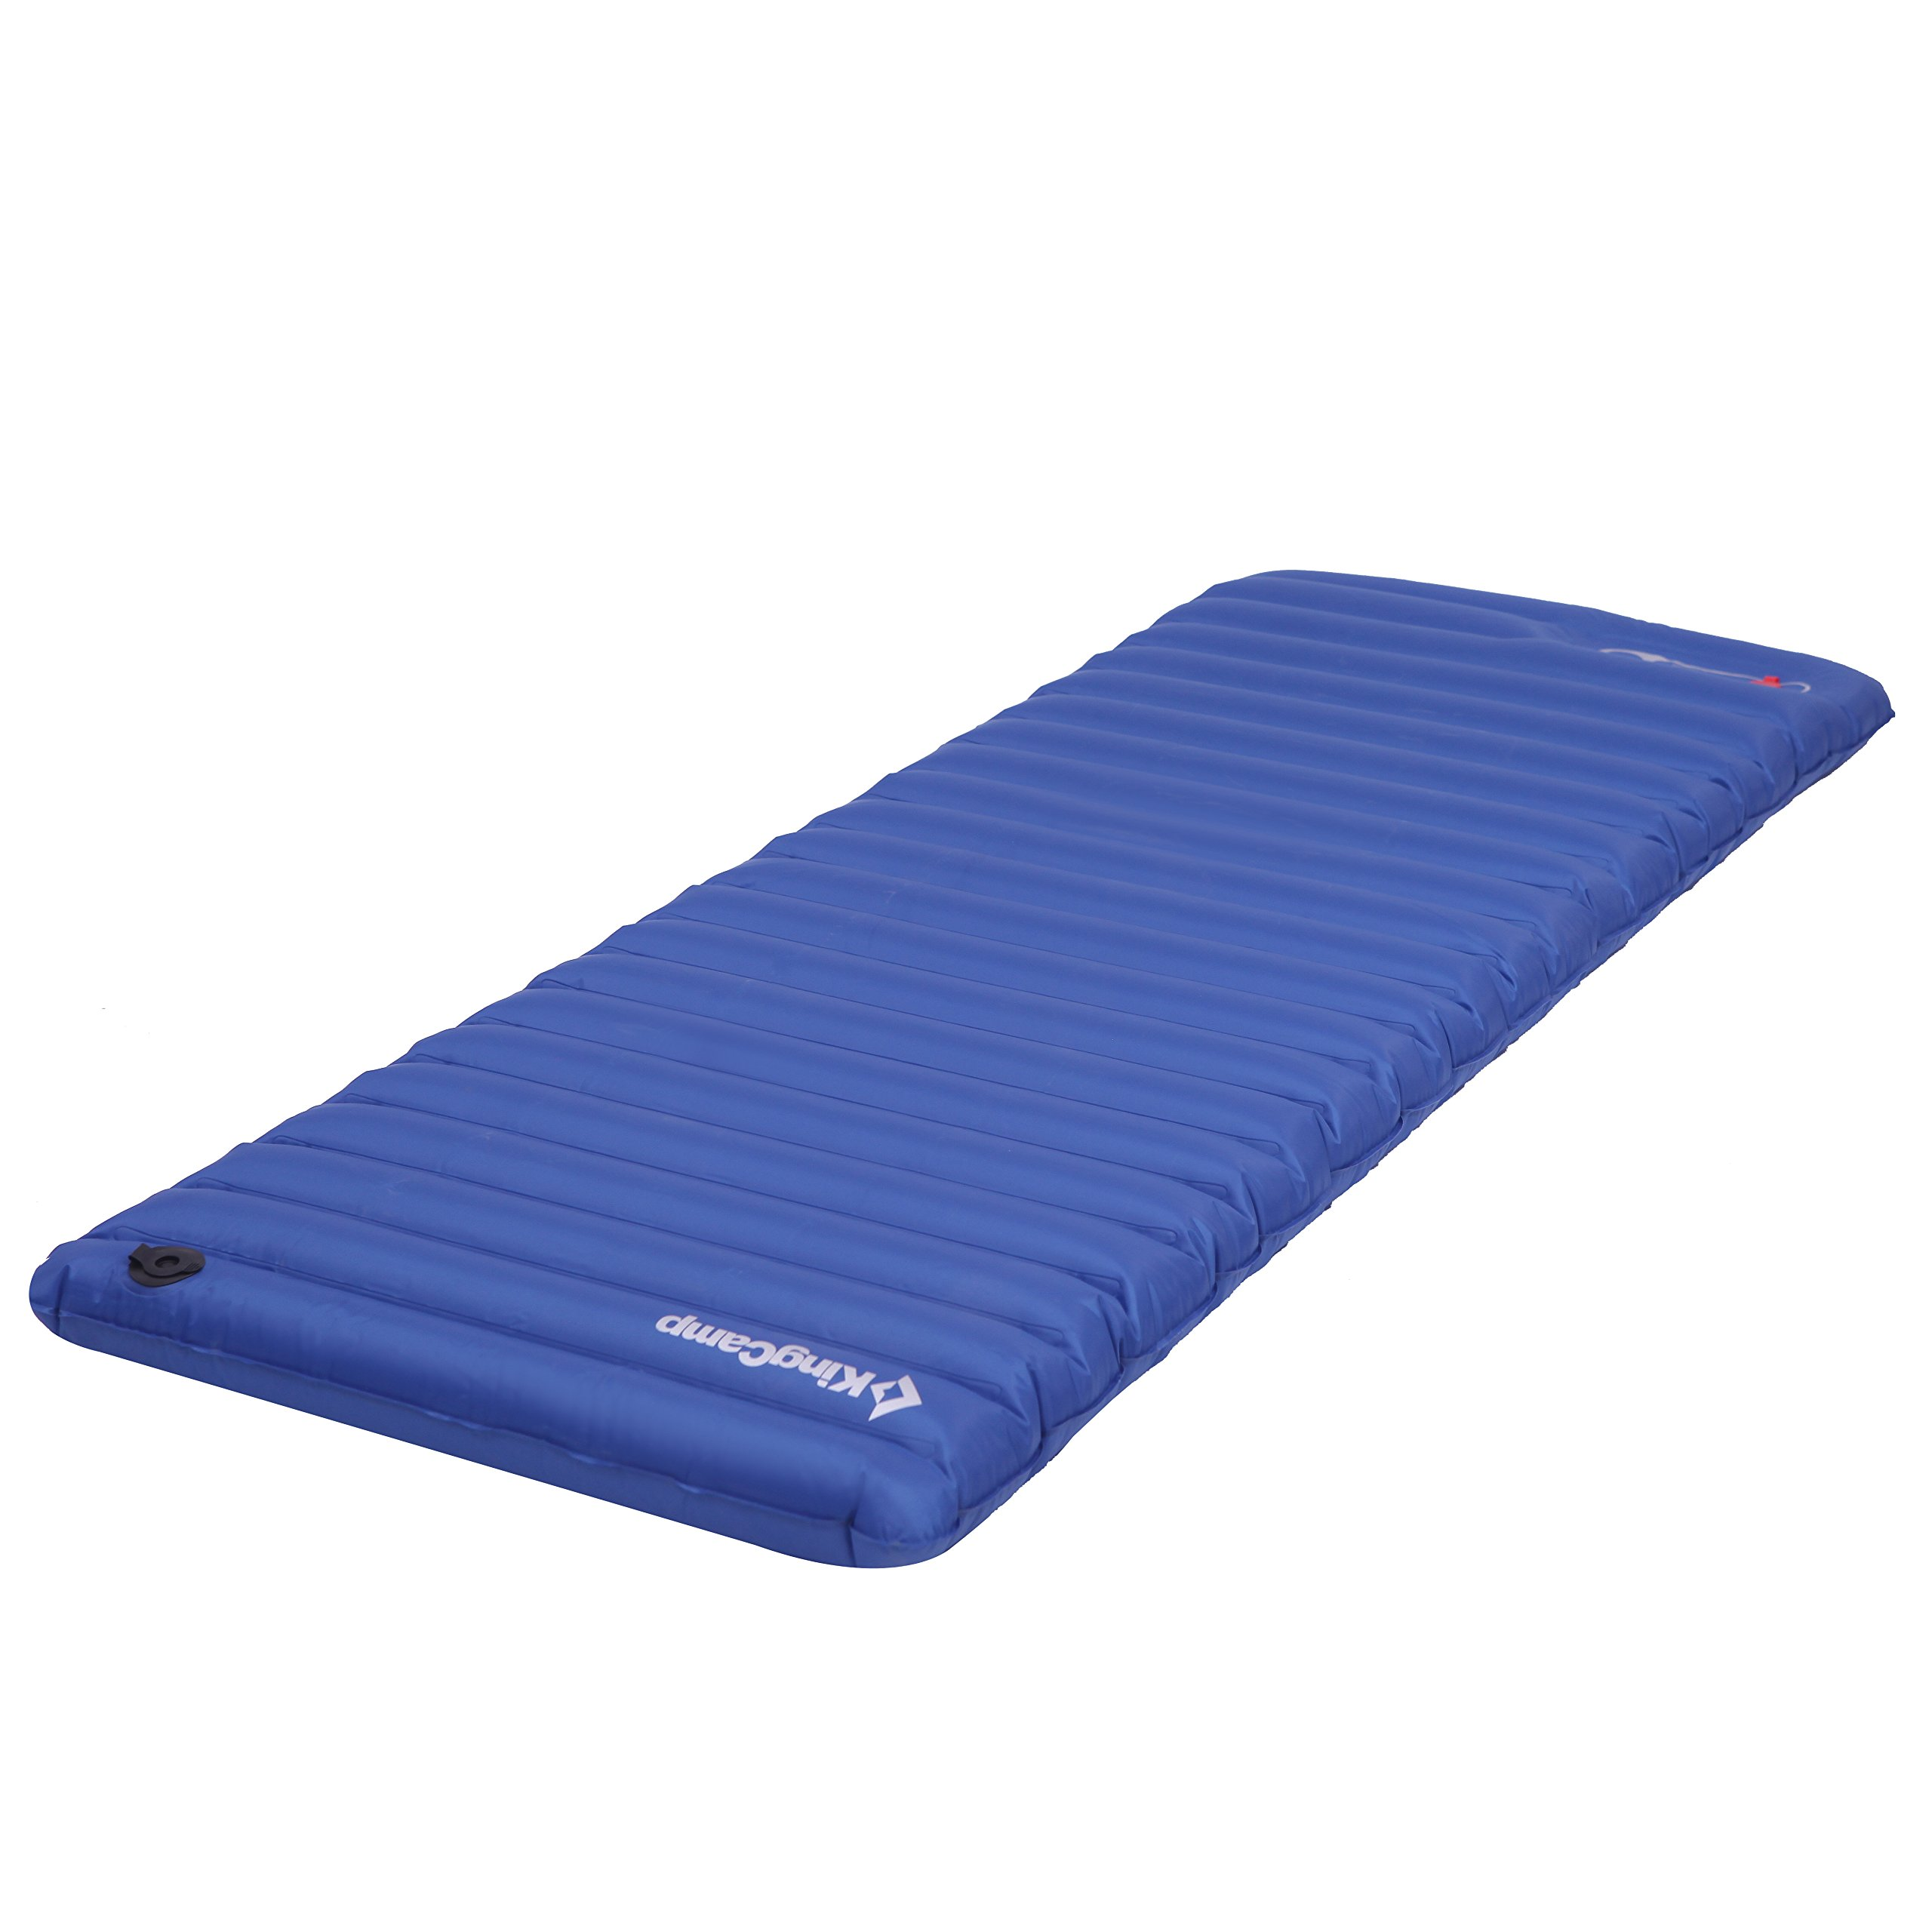 KingCamp Light Single Outdoor Camping Air Mattress Mat Pad Bed with Built-in Foot Pump, Blue, Single